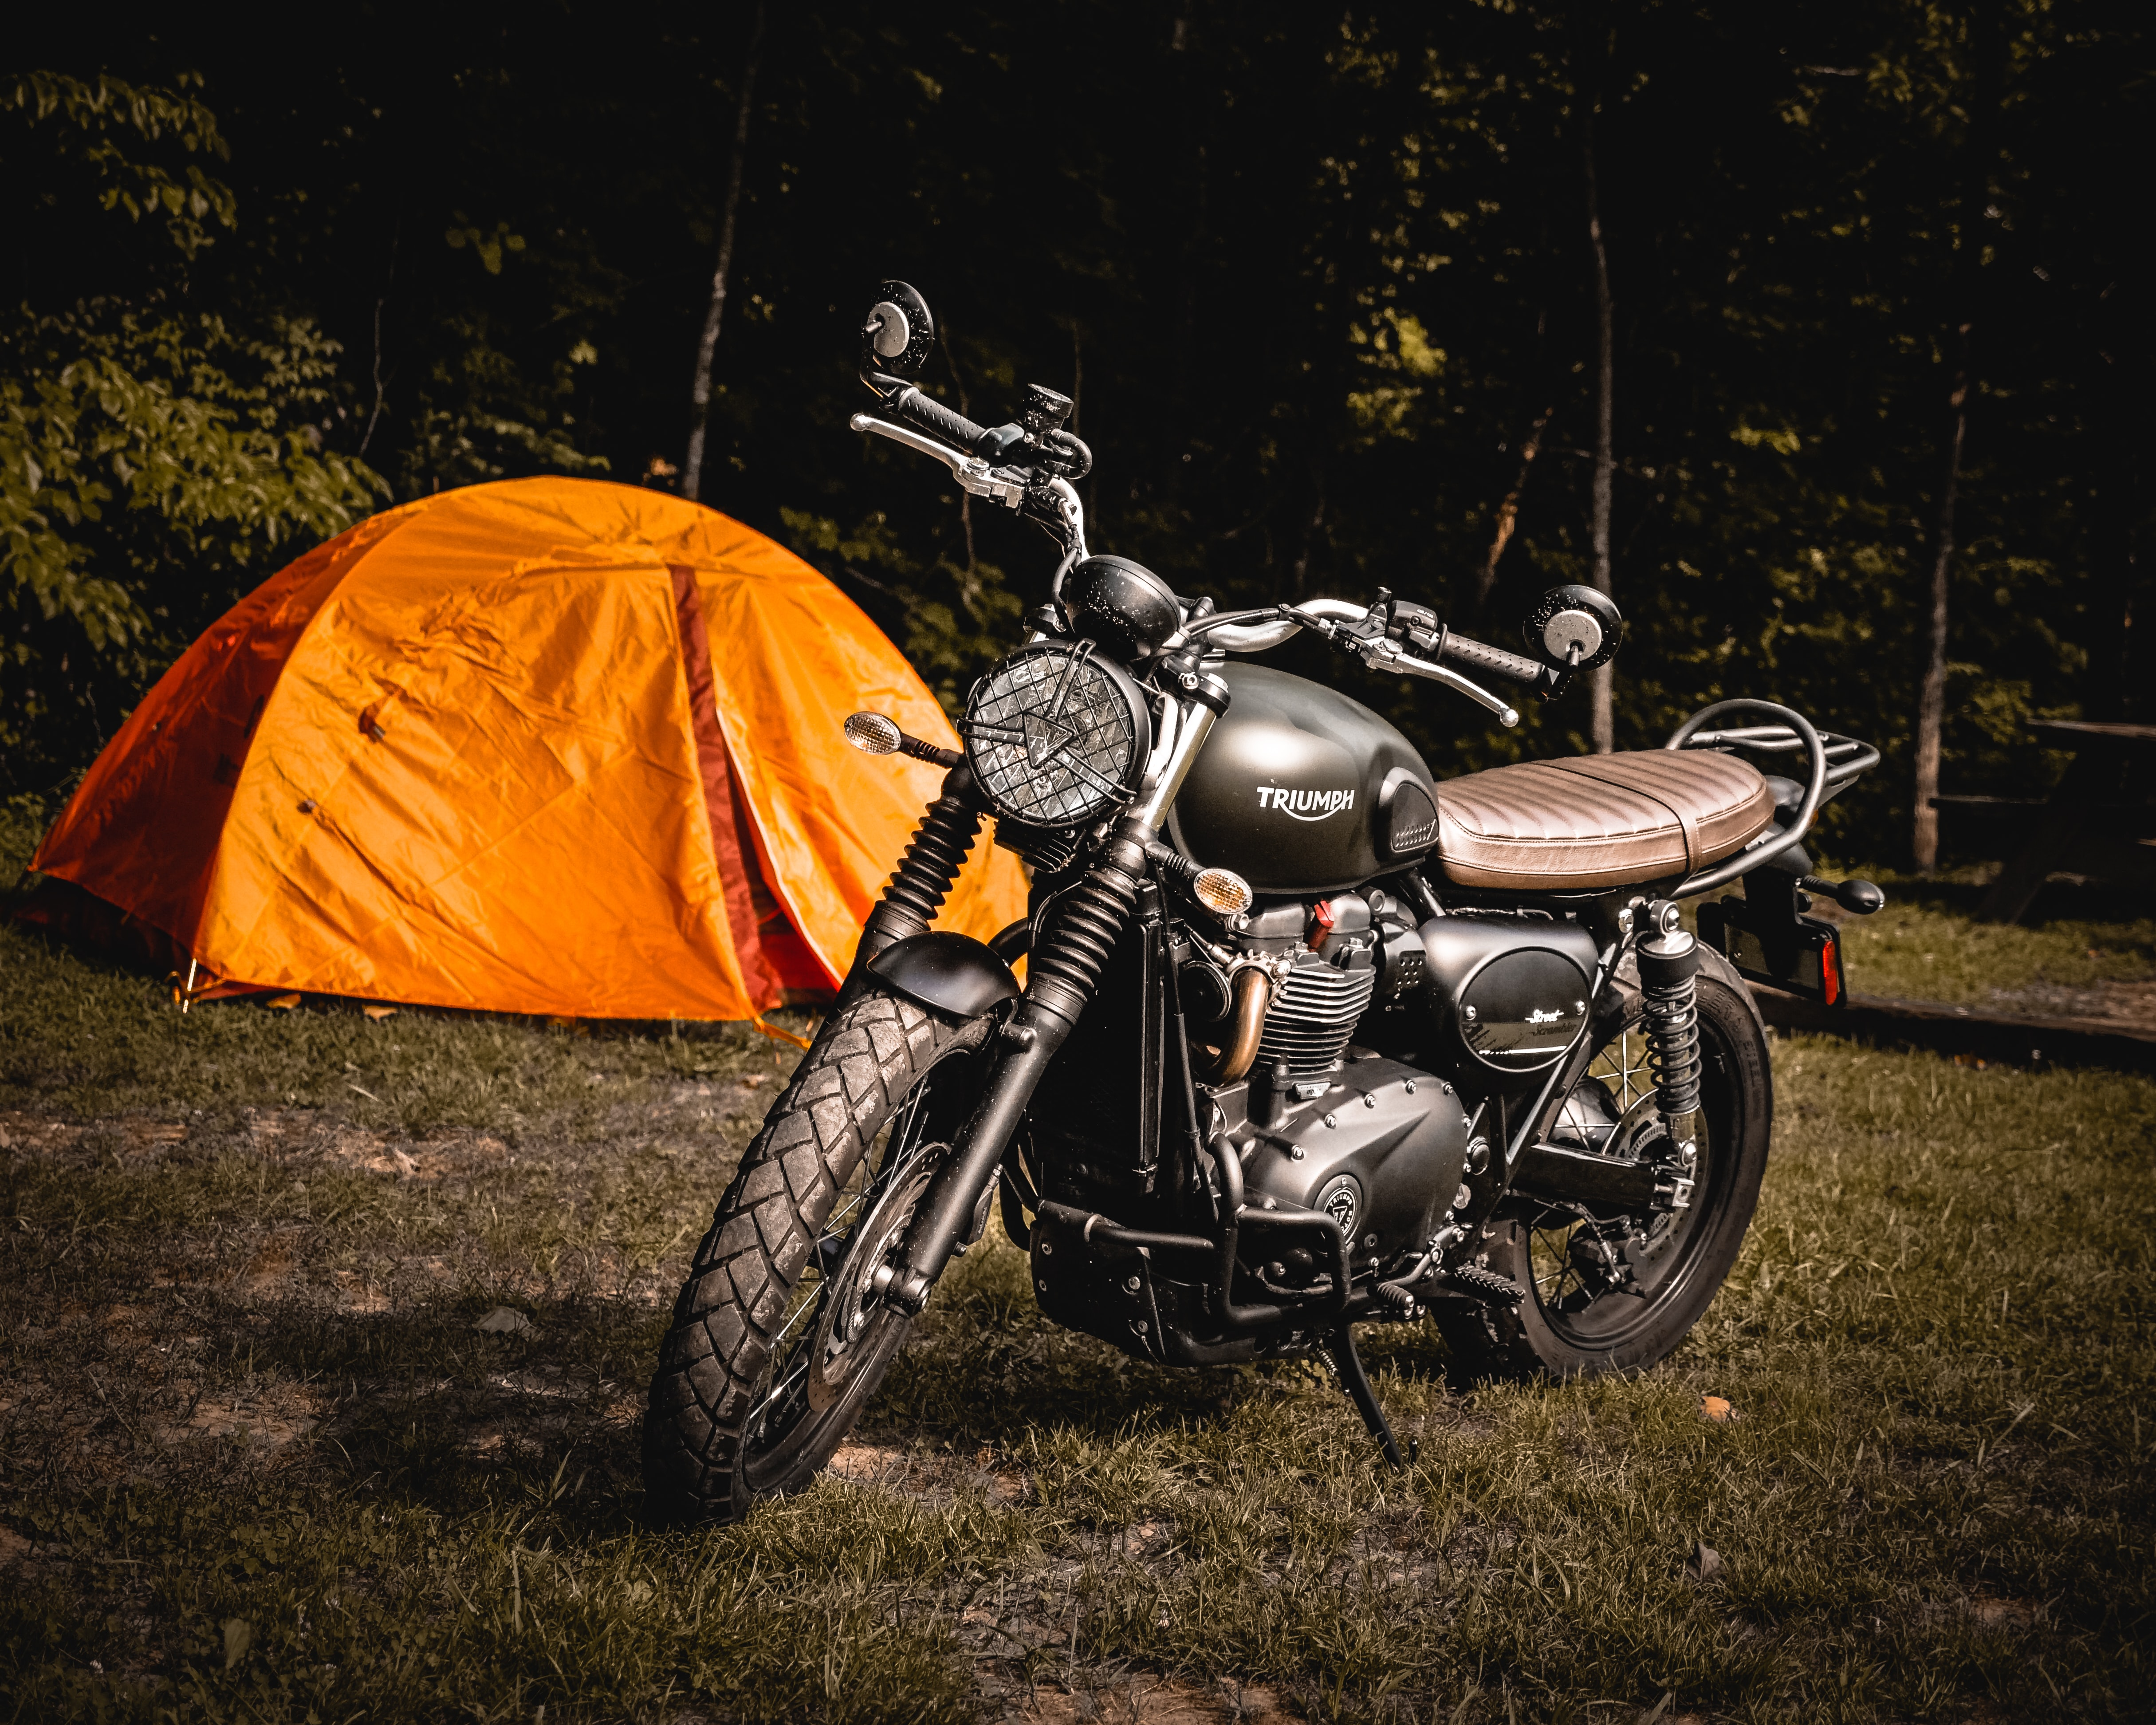 brown naked motorcycle parked beside orange camping tent